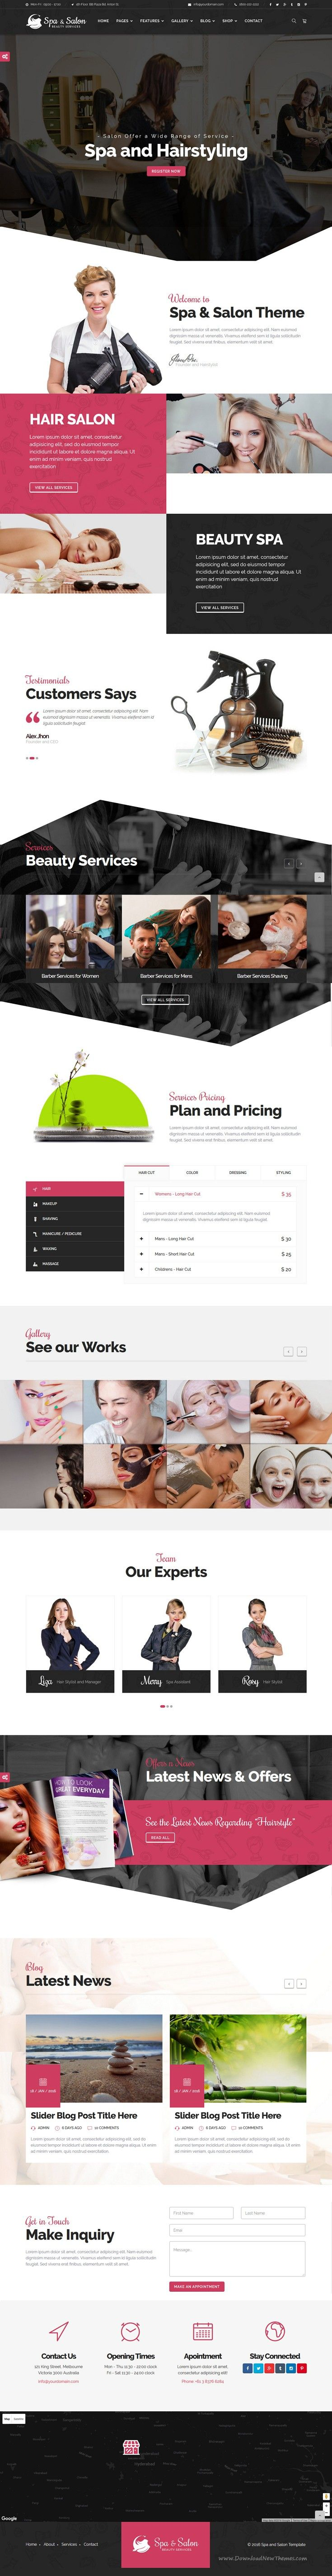 Beauty and Construction Services 2 in 1 wonderful bootstrap HTML template for Building, Renovation, Construction and #Beauty, #Spa, Hair Salon, Therapy Services #website. Download Now!